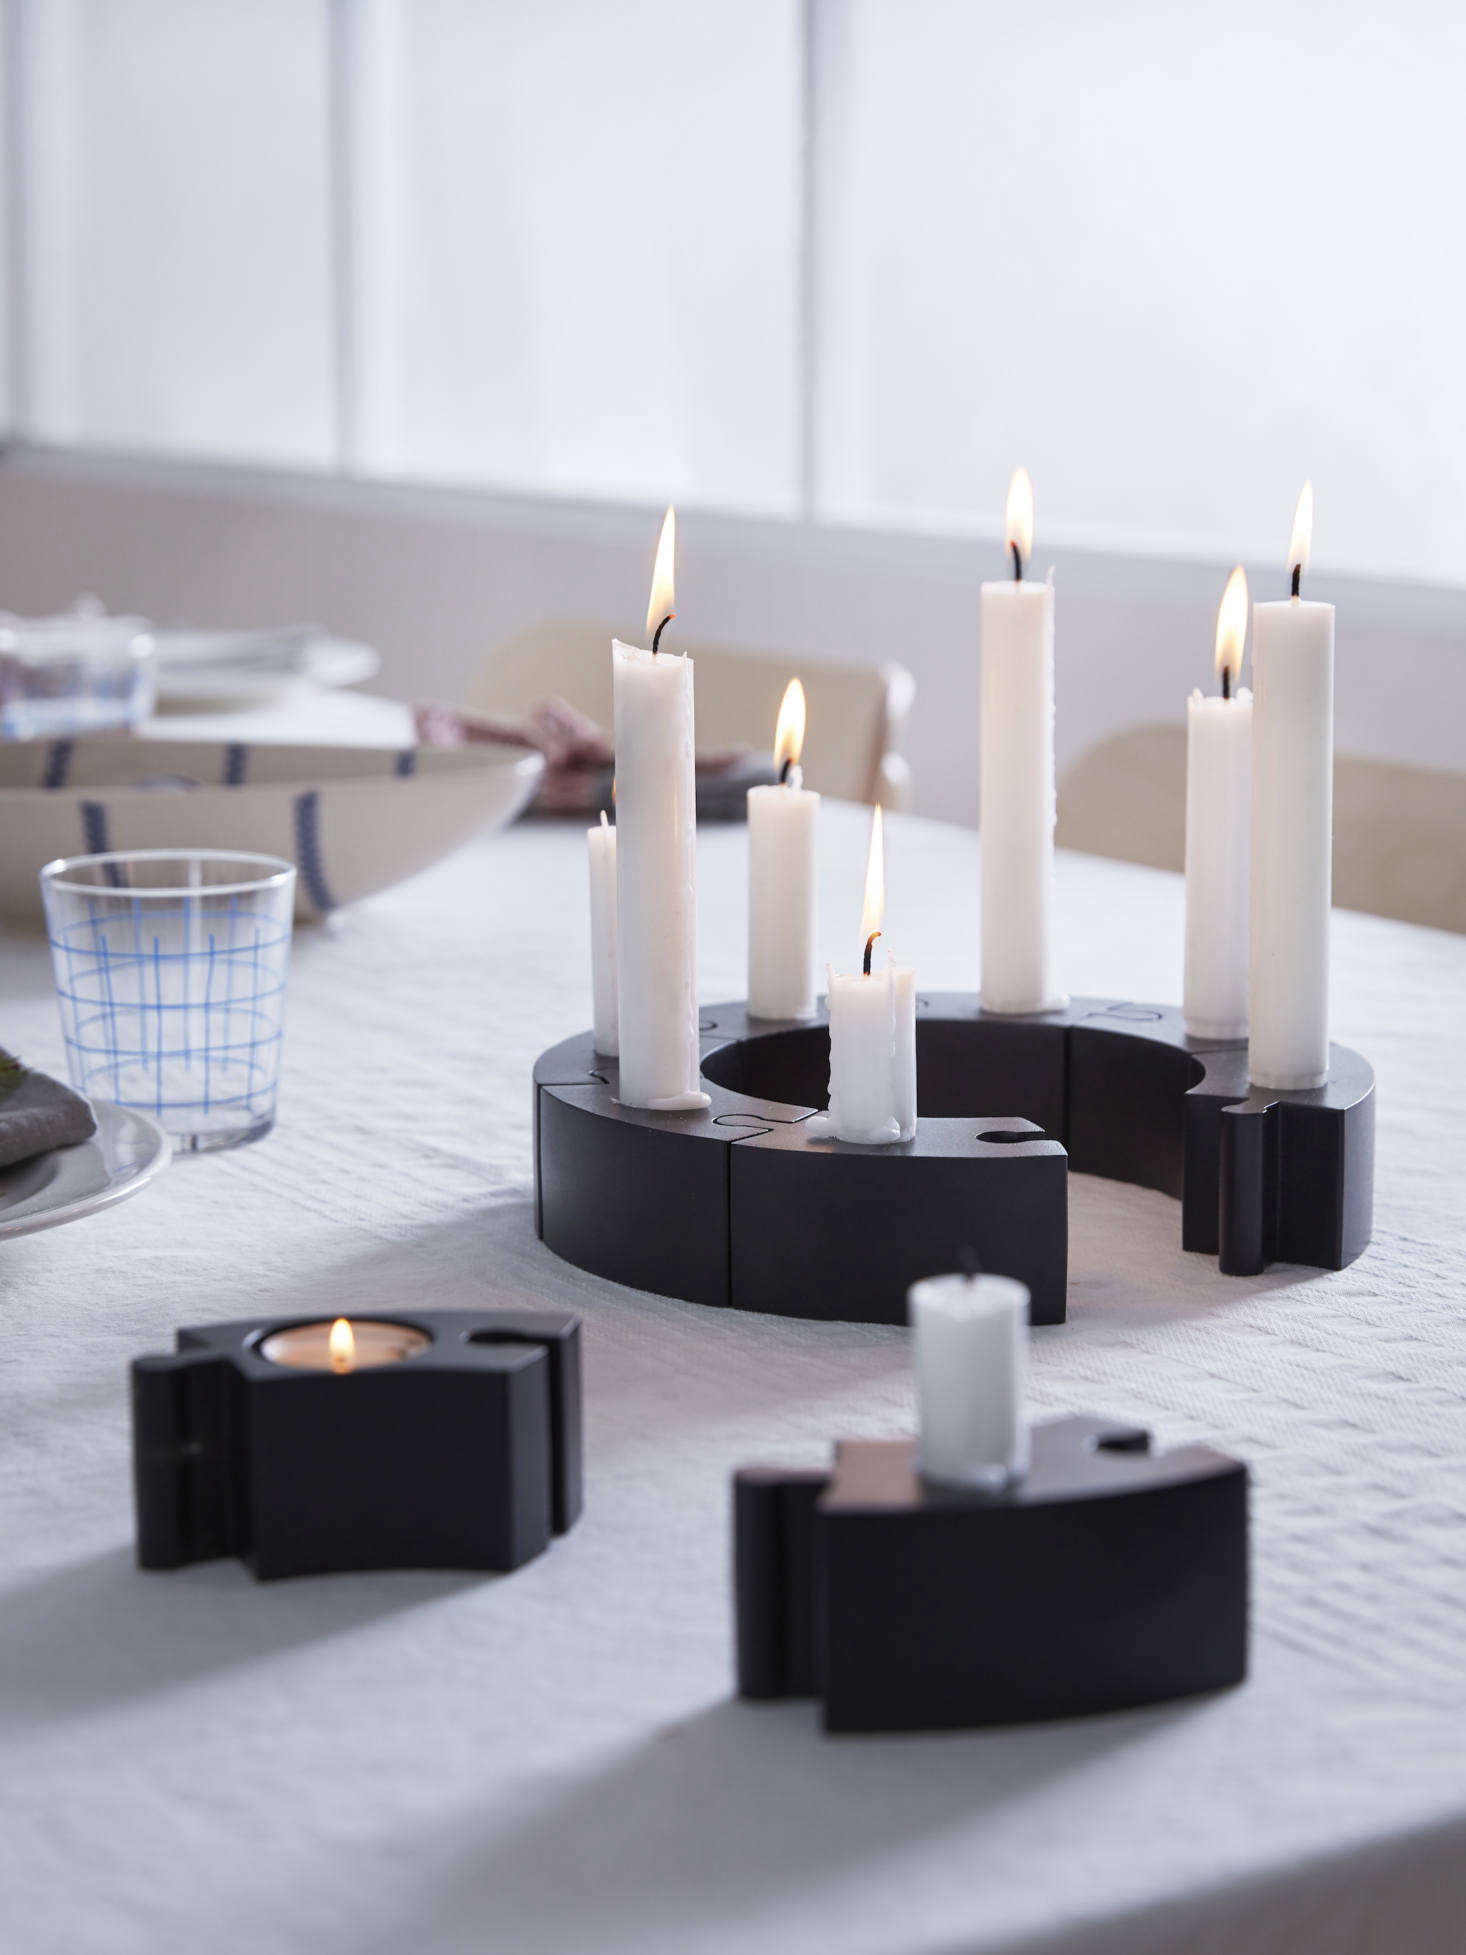 You can buy the powder-coated aluminum candle holders individually ($4.99 each) or as an 8-piece puzzle set ($39.9